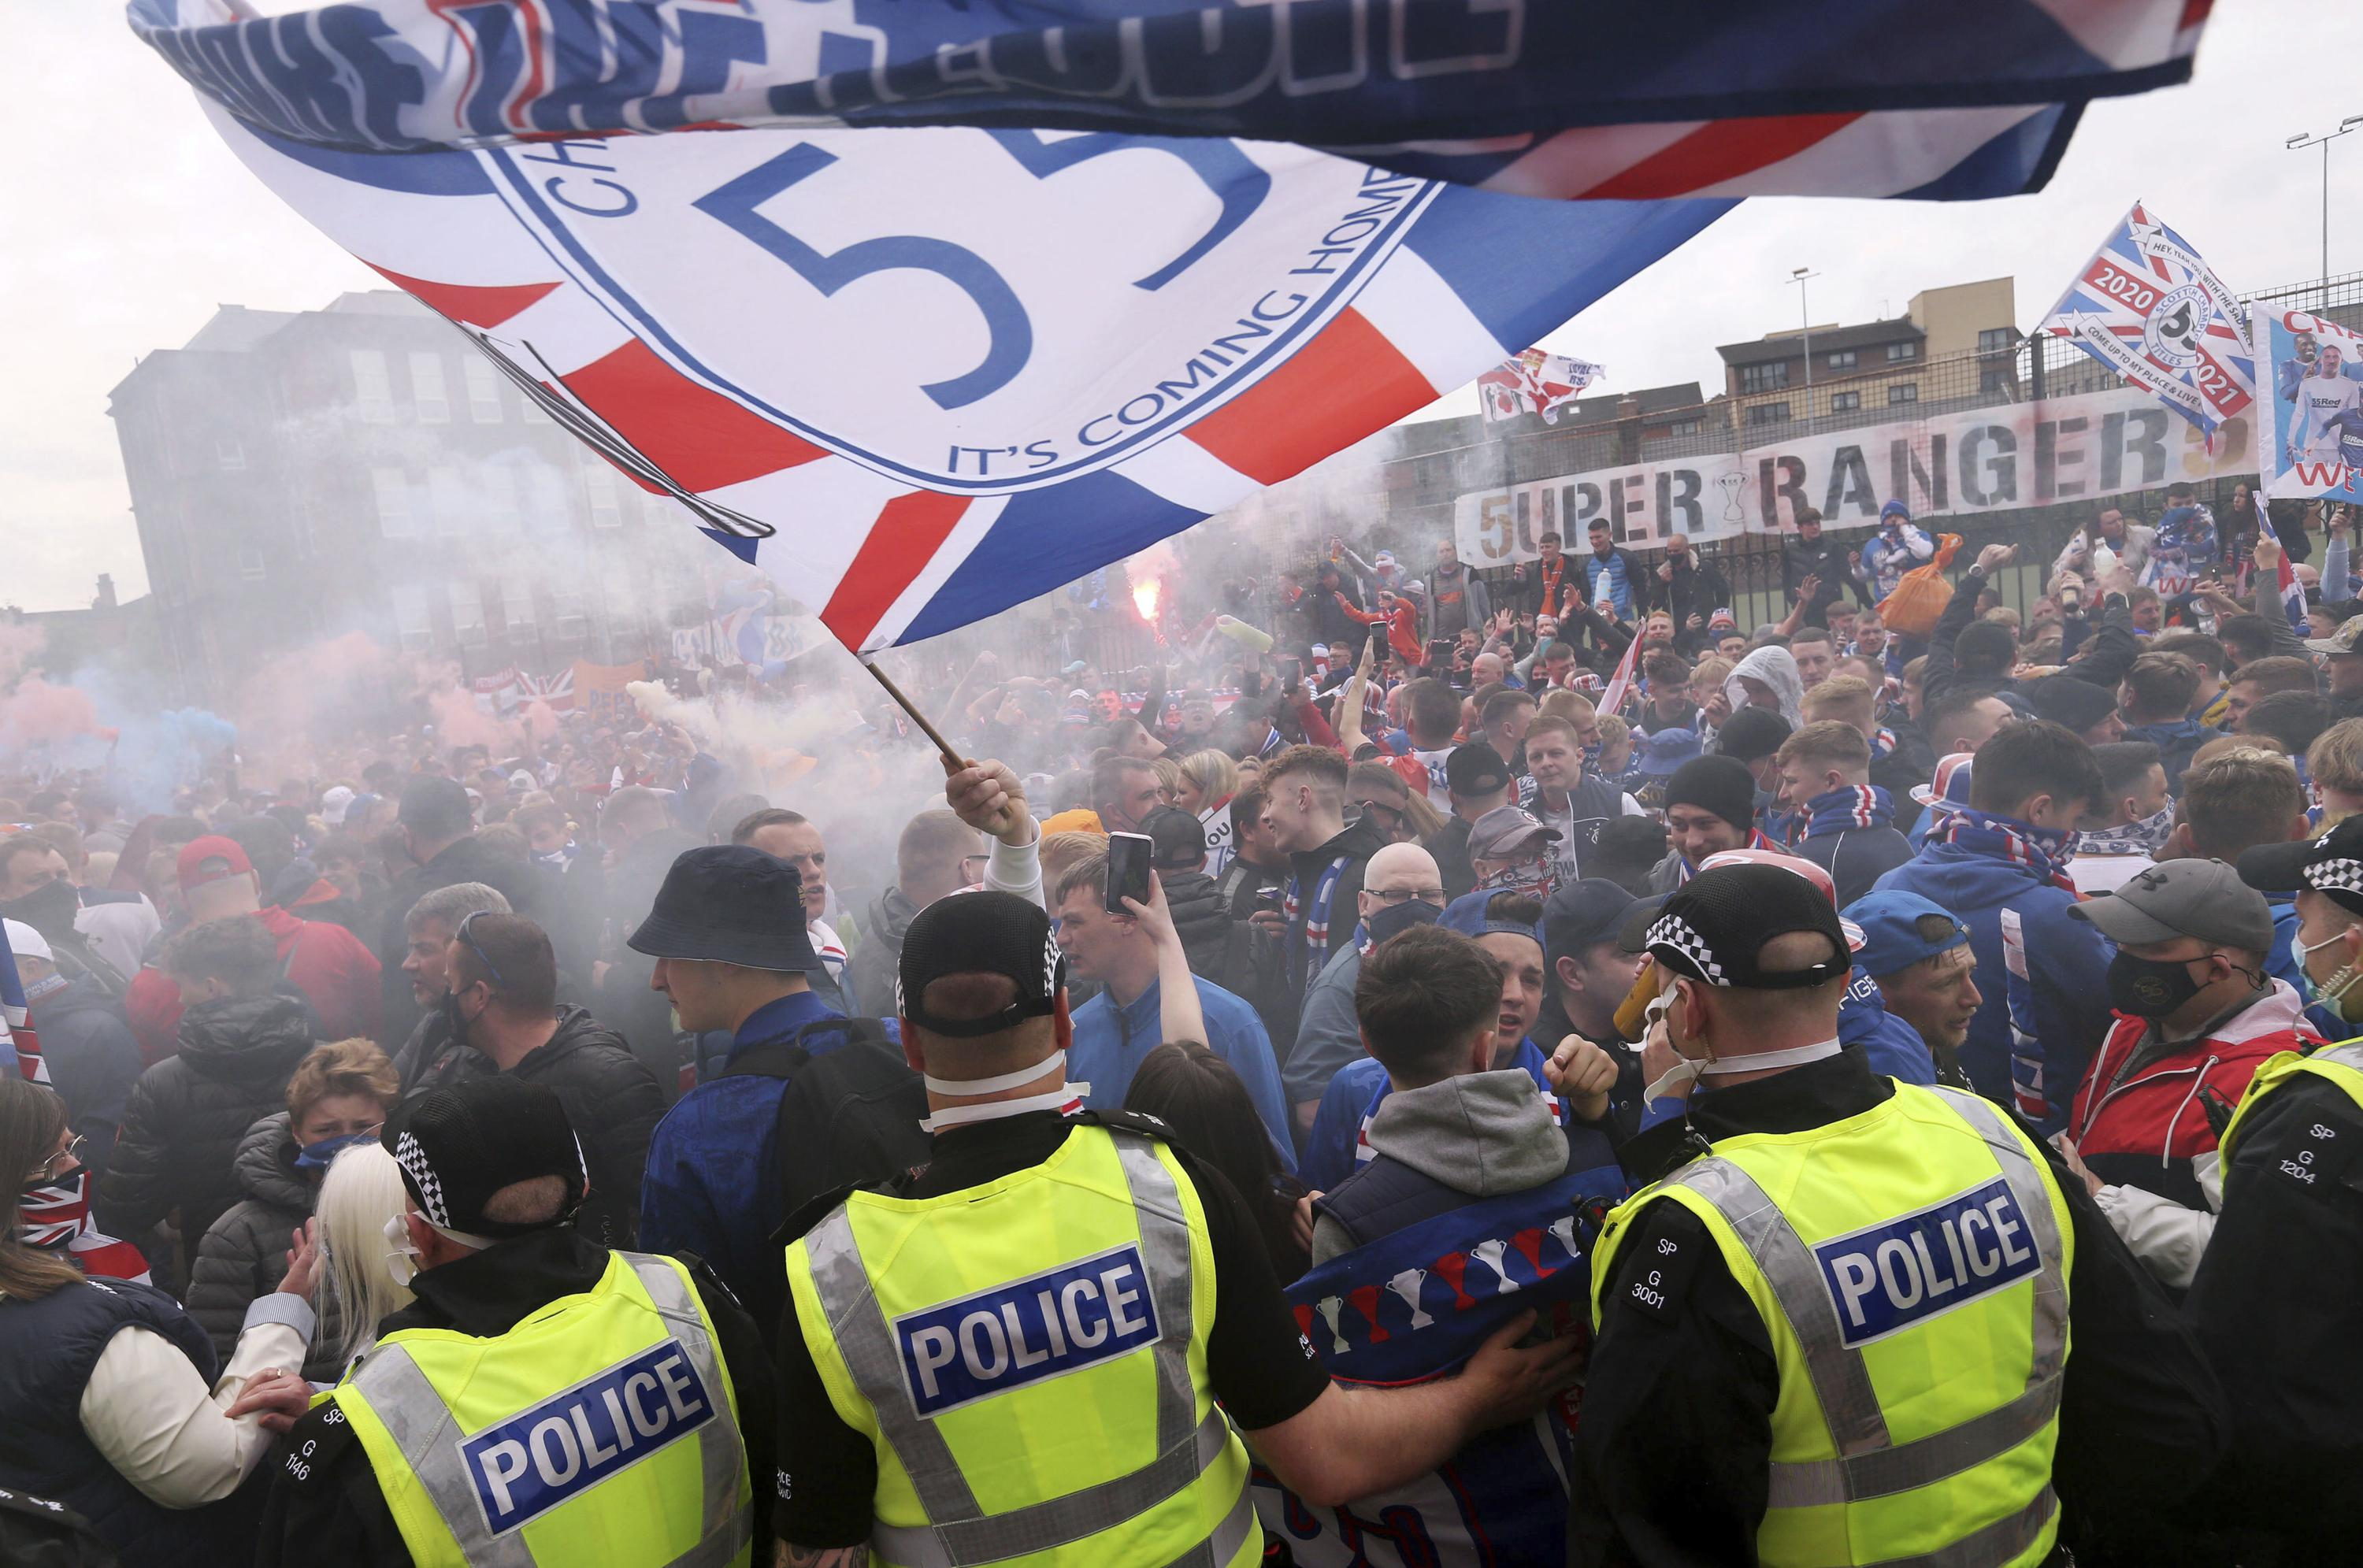 Rangers fans told to disperse amid Scottish title revelry